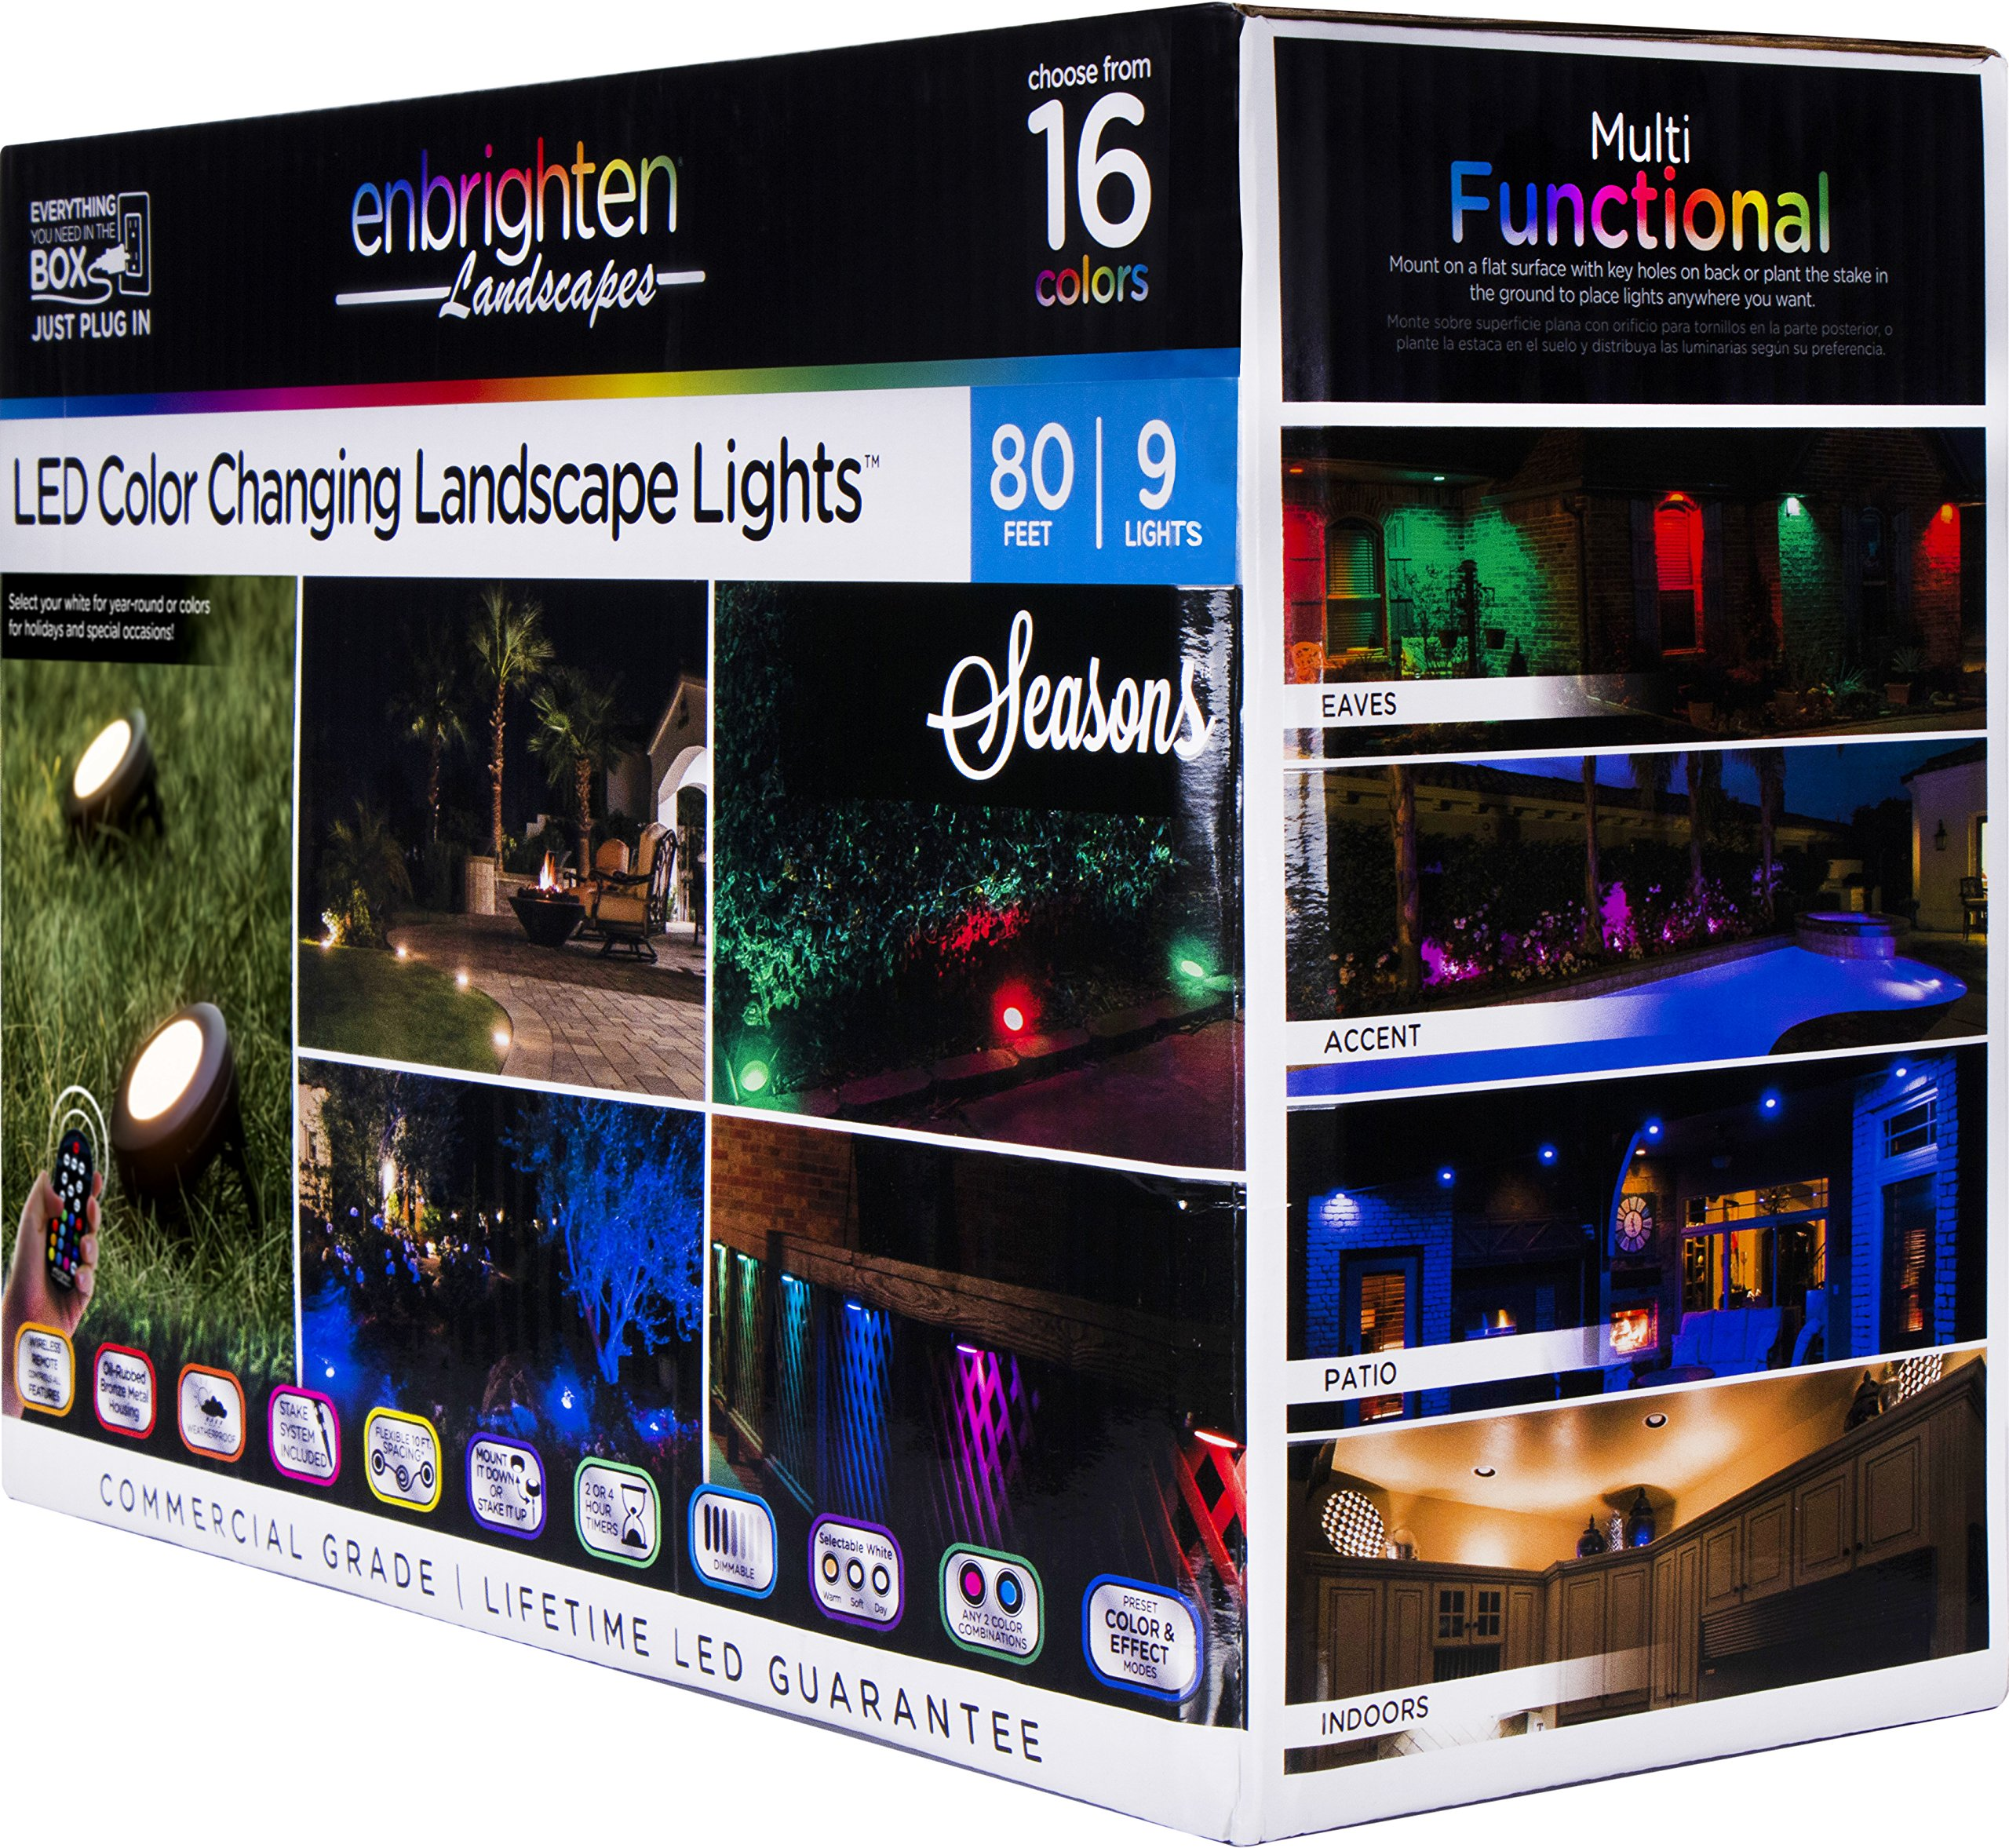 Enbrighten 41015 Seasons LED Landscape Lights (80ft.), Selectable White & Color Changing, 9 Lifetime Pucks, Wireless Remote, Outdoor, Commercial Grade, Weatherproof, Spotlight, Garden, Path Light